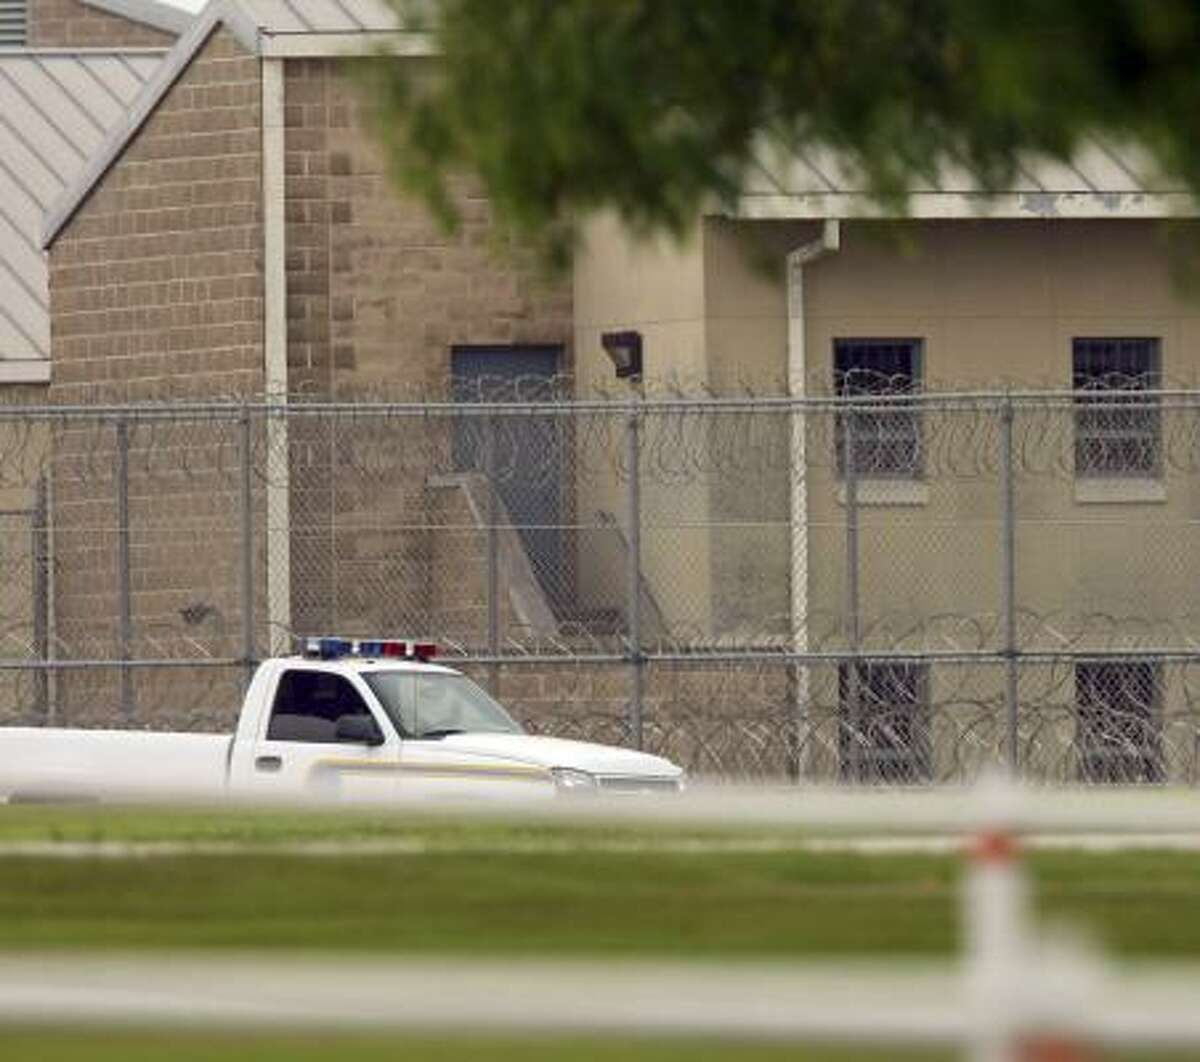 A prison security vehicle patrols the fence line Friday following a riot at the Federal Correctional Institution, near Three Rivers.